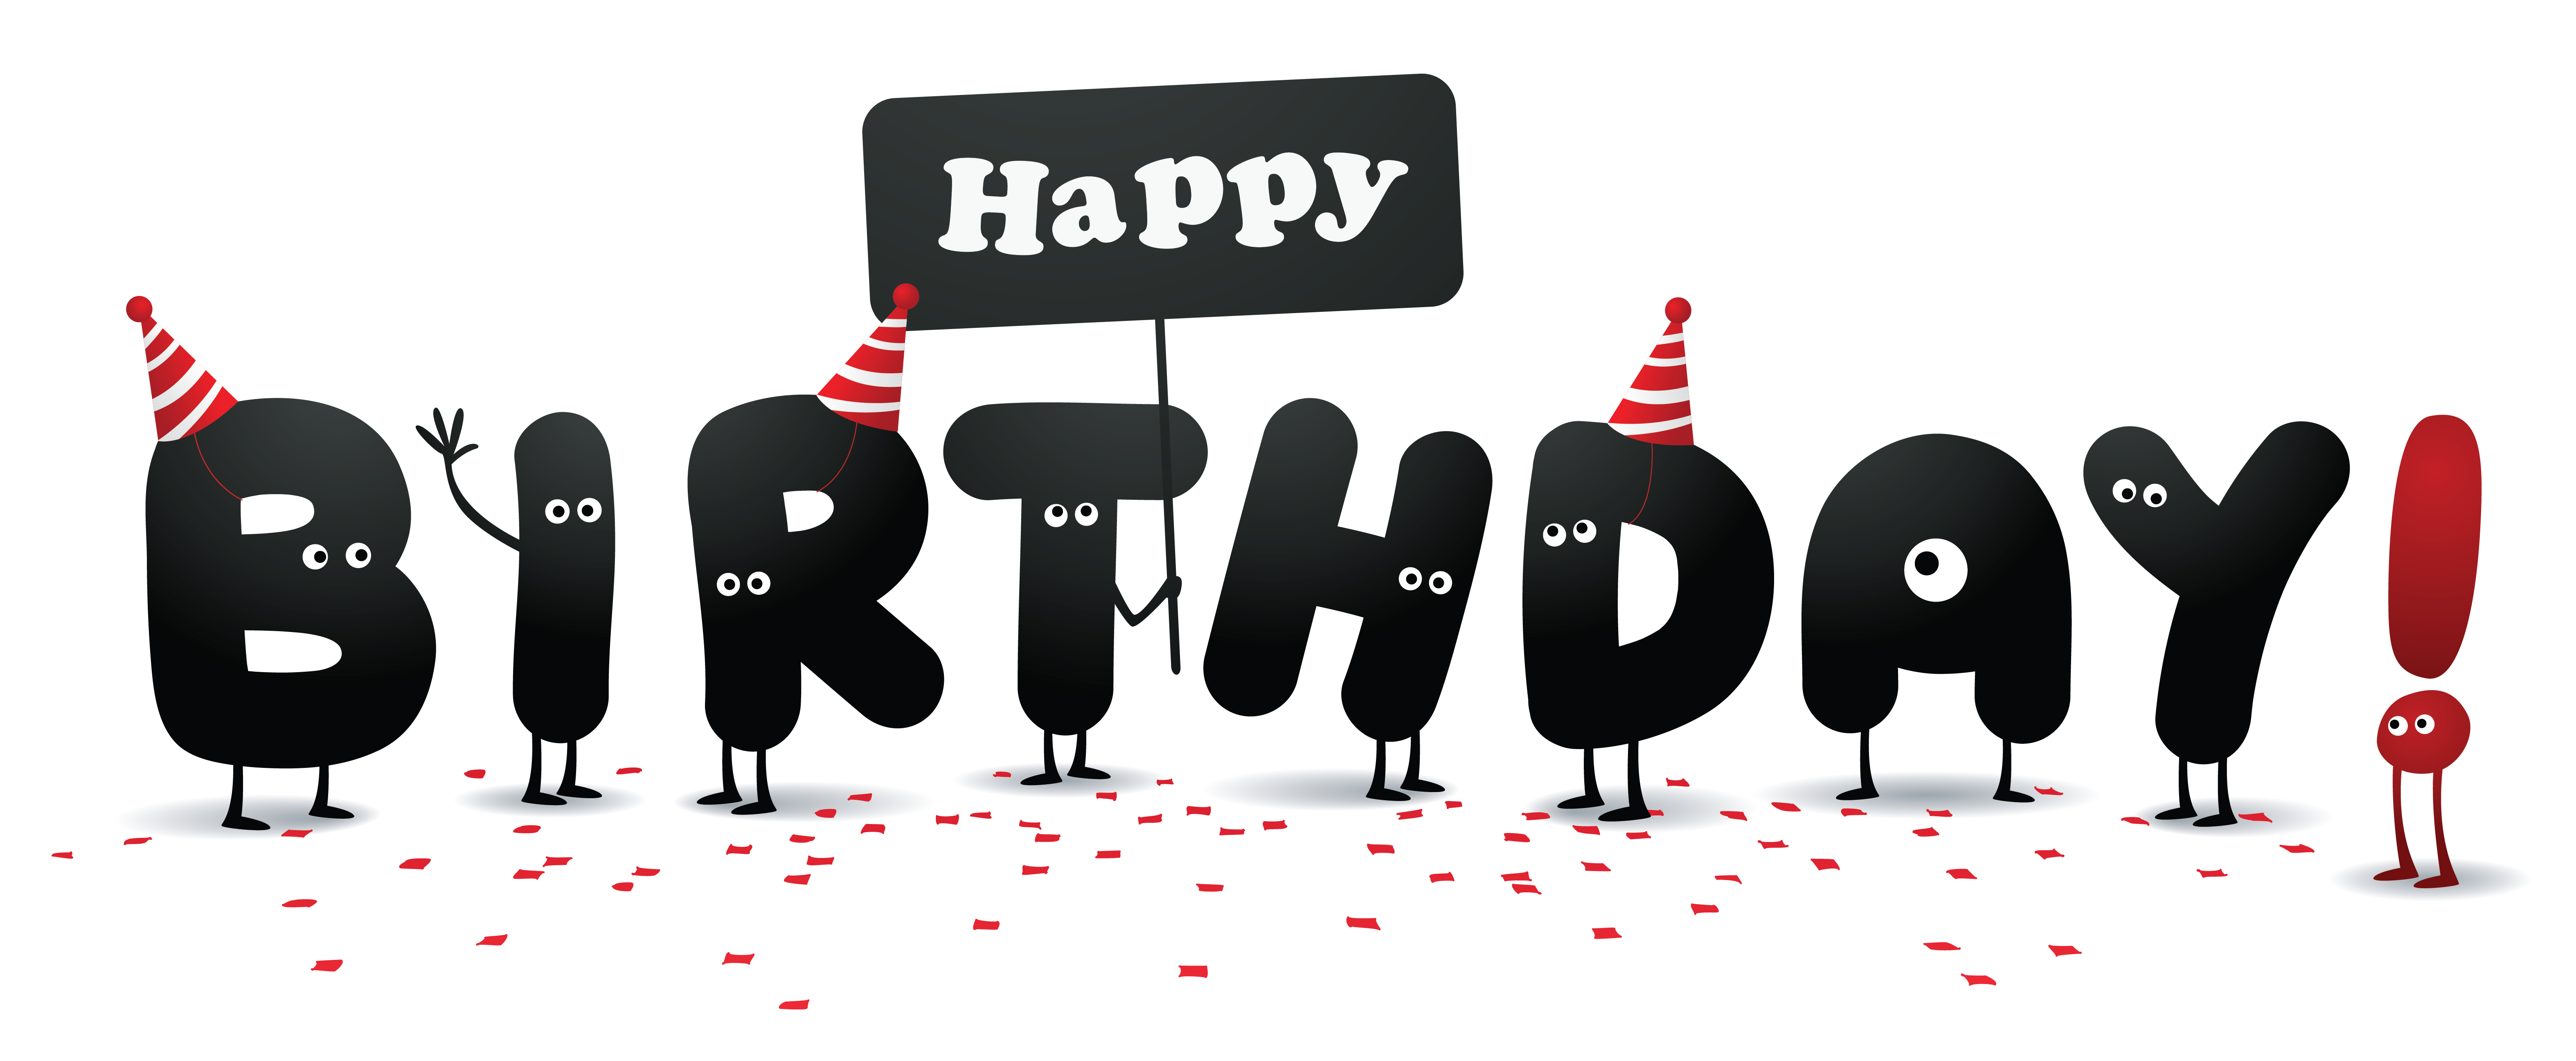 Birthday for men clipart png svg transparent stock Pin by Mehran Kordmir on Art journalsهههه | Birthday quotes ... svg transparent stock